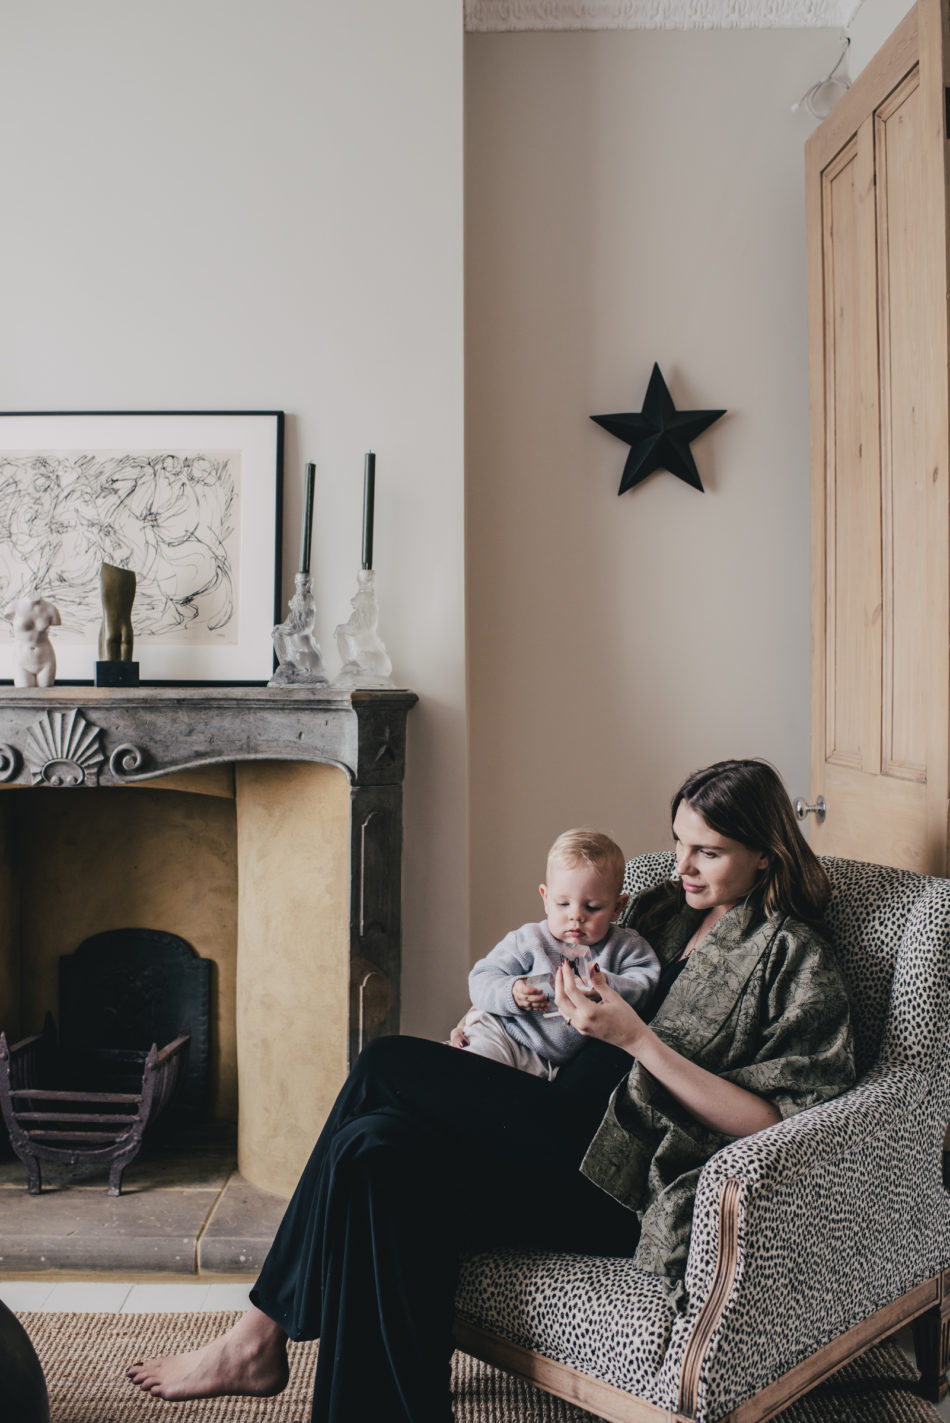 Emma Champtaloup on building a family home in north London